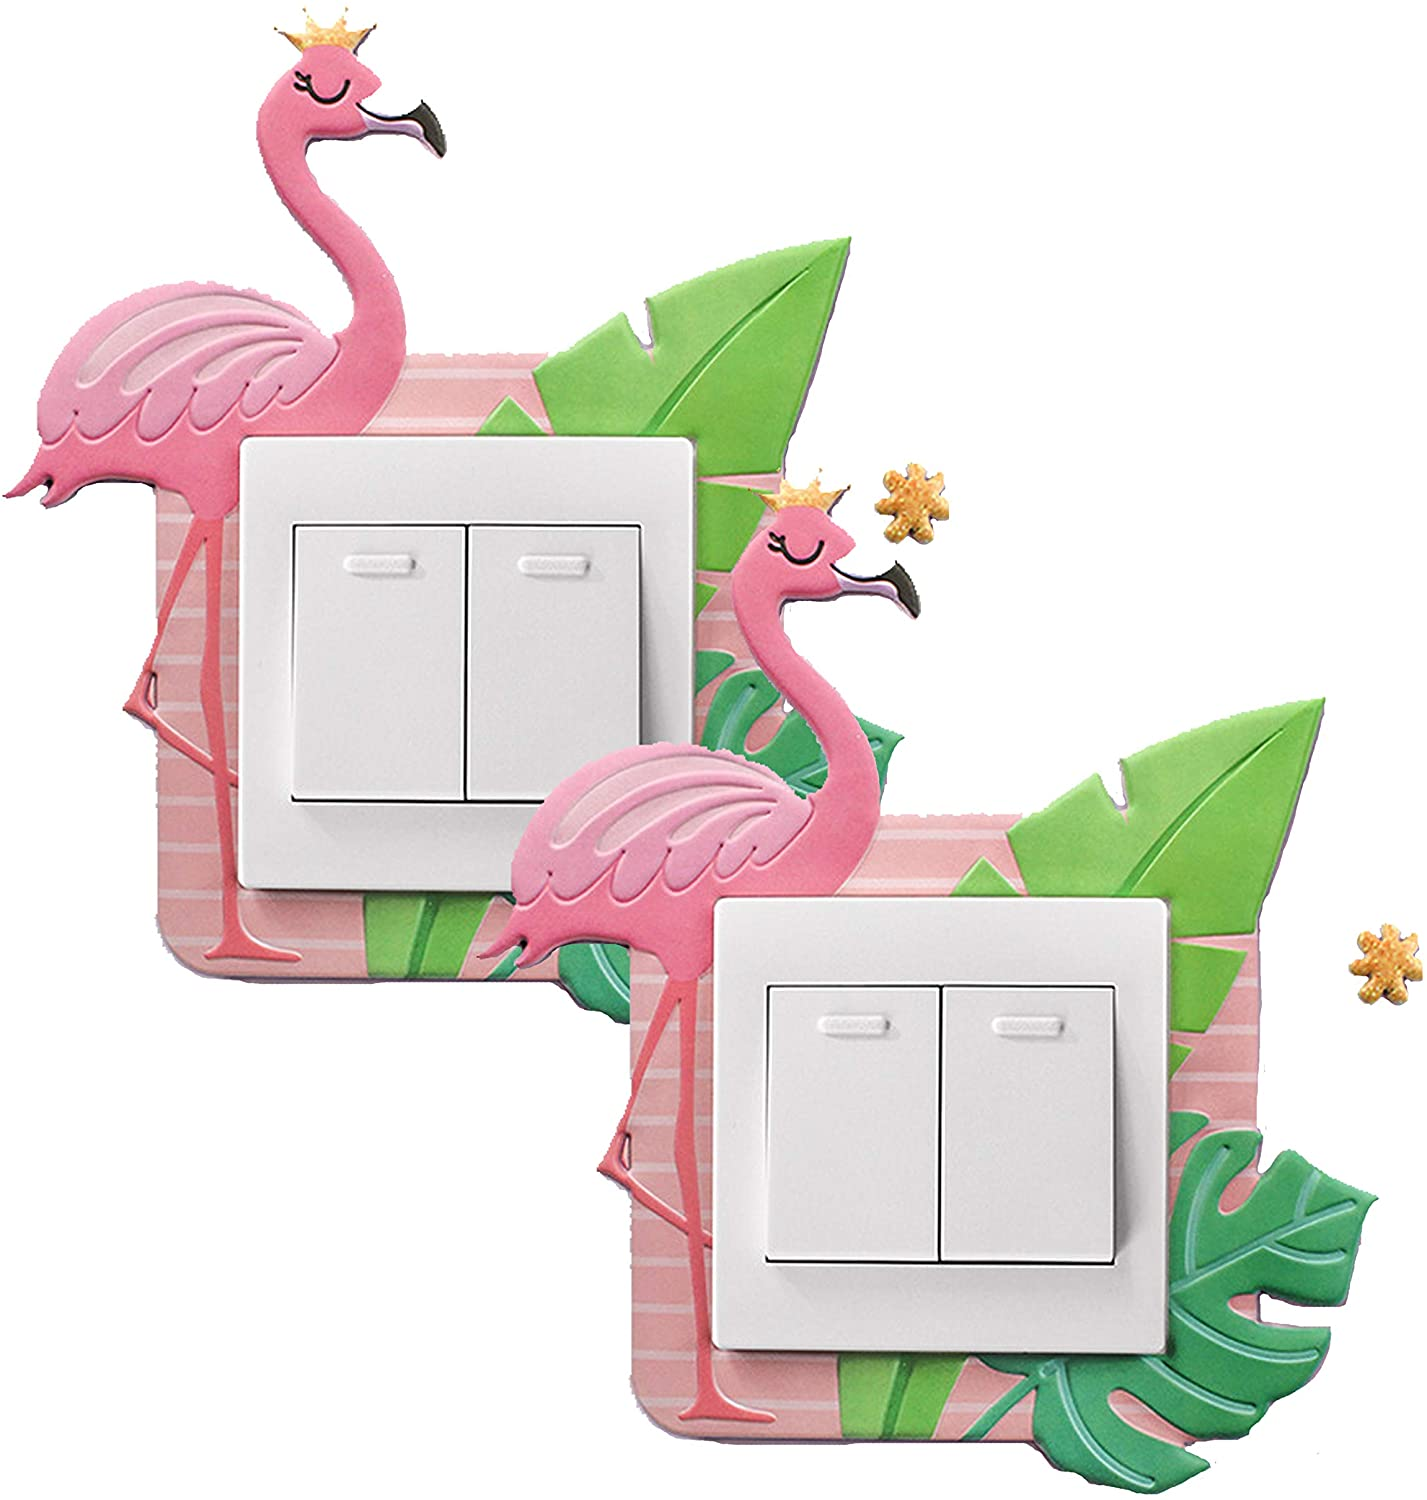 GOTONE 2PCS Unicorn Light Switch Stickers Cover Switches Kids 3D Sticker Surround for Home Room Removable, Self-Adhesive Glitter Wall Décor Gifts for Children Girls Womens Birthday Gifts